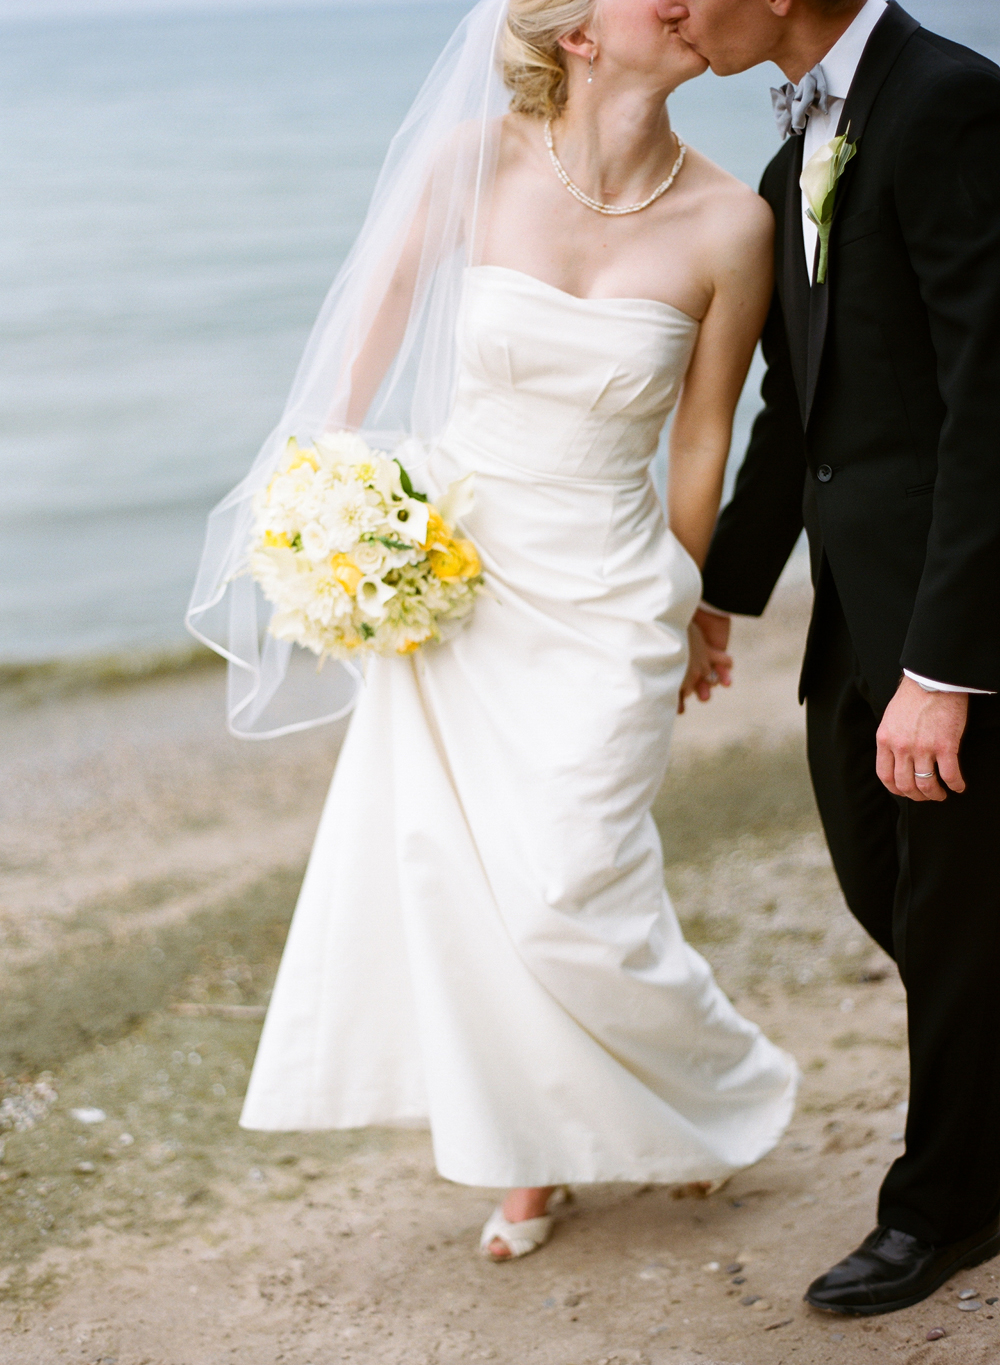 pritzlaff-milwaukee-wedding-photographer-28